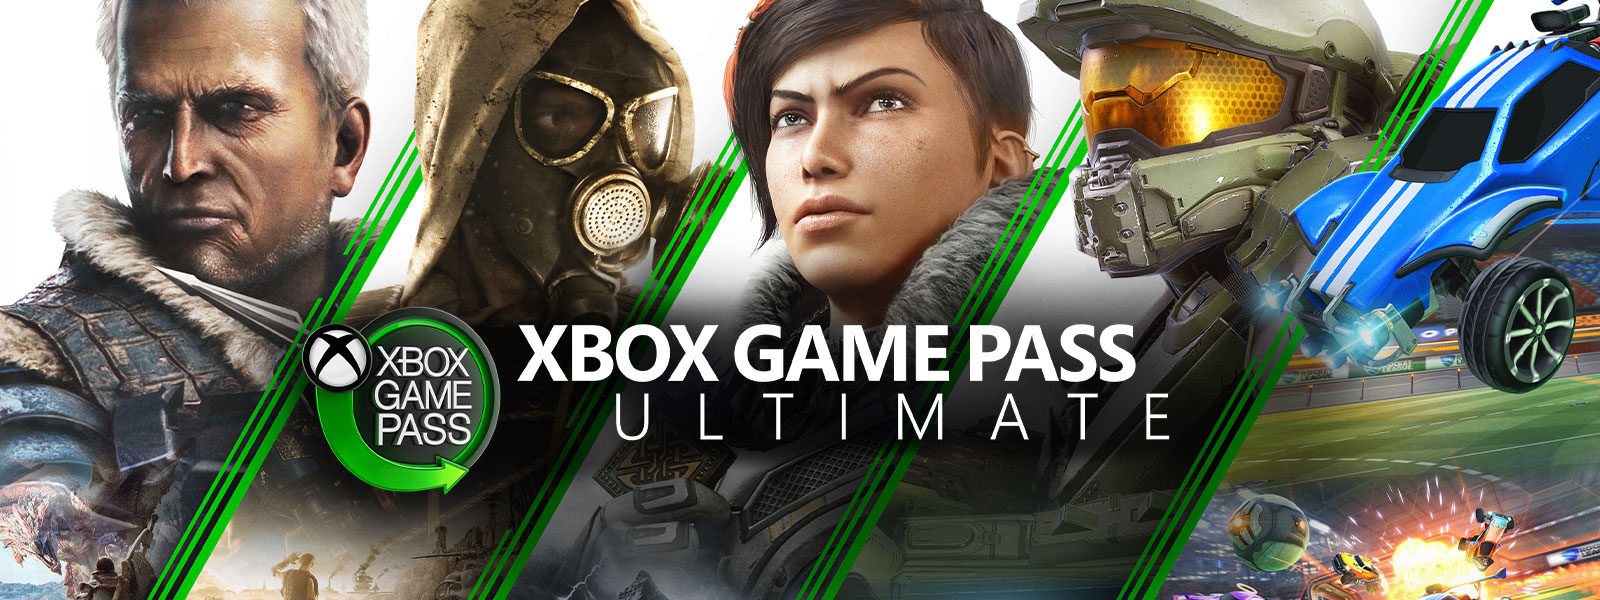 Xbox Game Pass Ultimate, A collage of Xbox characters and vehicles behind the Xbox Game Pass logo